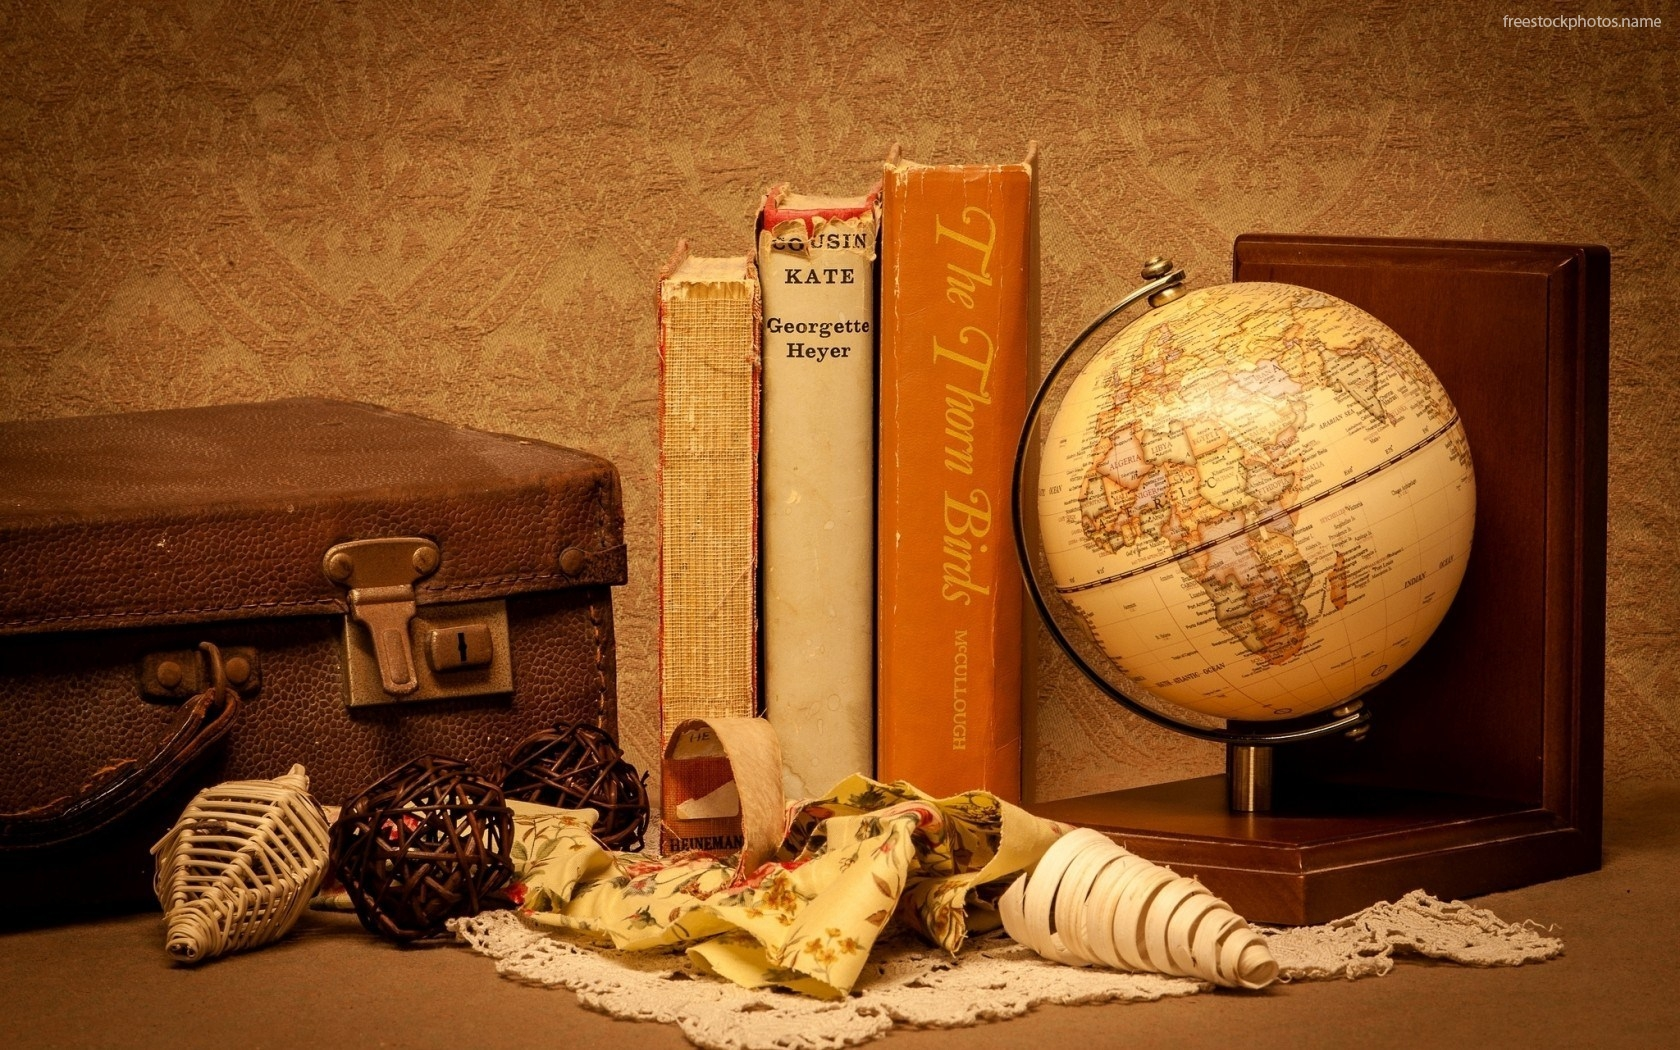 Download Stock Photos of books world globe suitcase wallpaper images 1680x1050